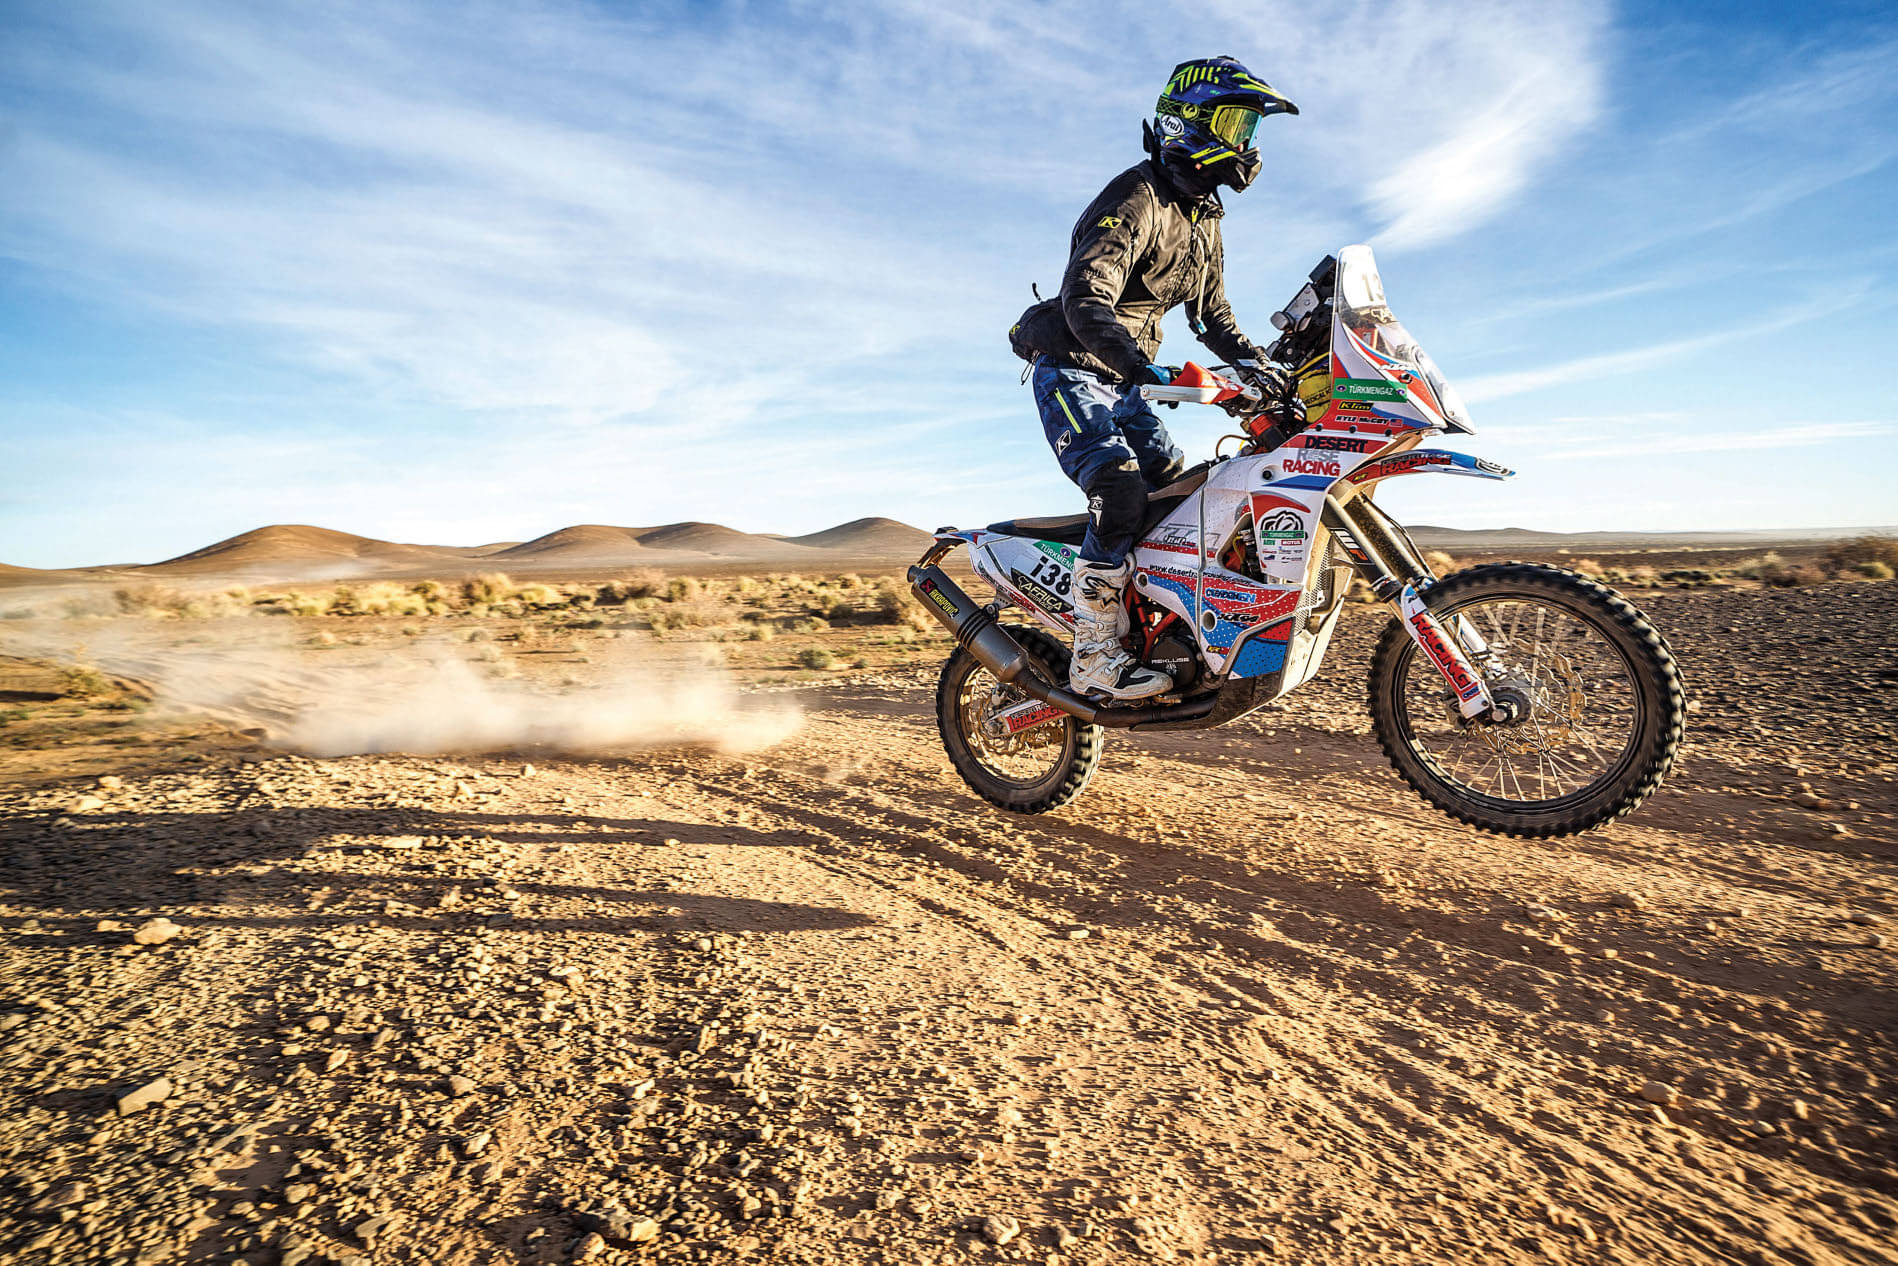 Racer Profile: From Ultra- Distance Running To The Ultimate Rally Race Kyle Mccoy Trains Up For Dakar 2020